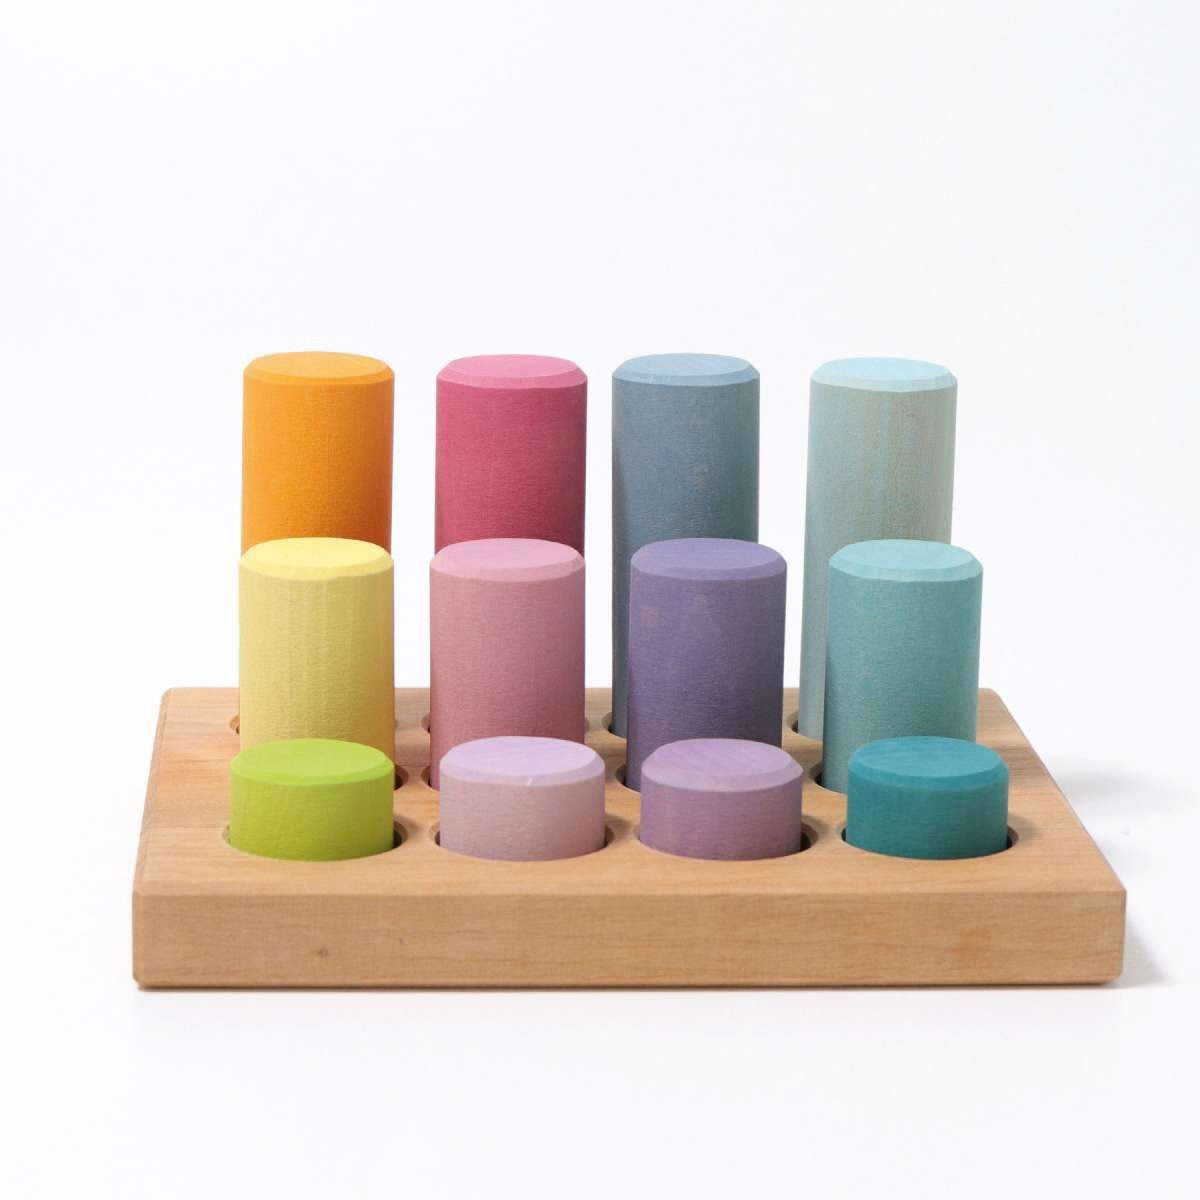 Grimm's Stacking Game Small Rollers Pastel